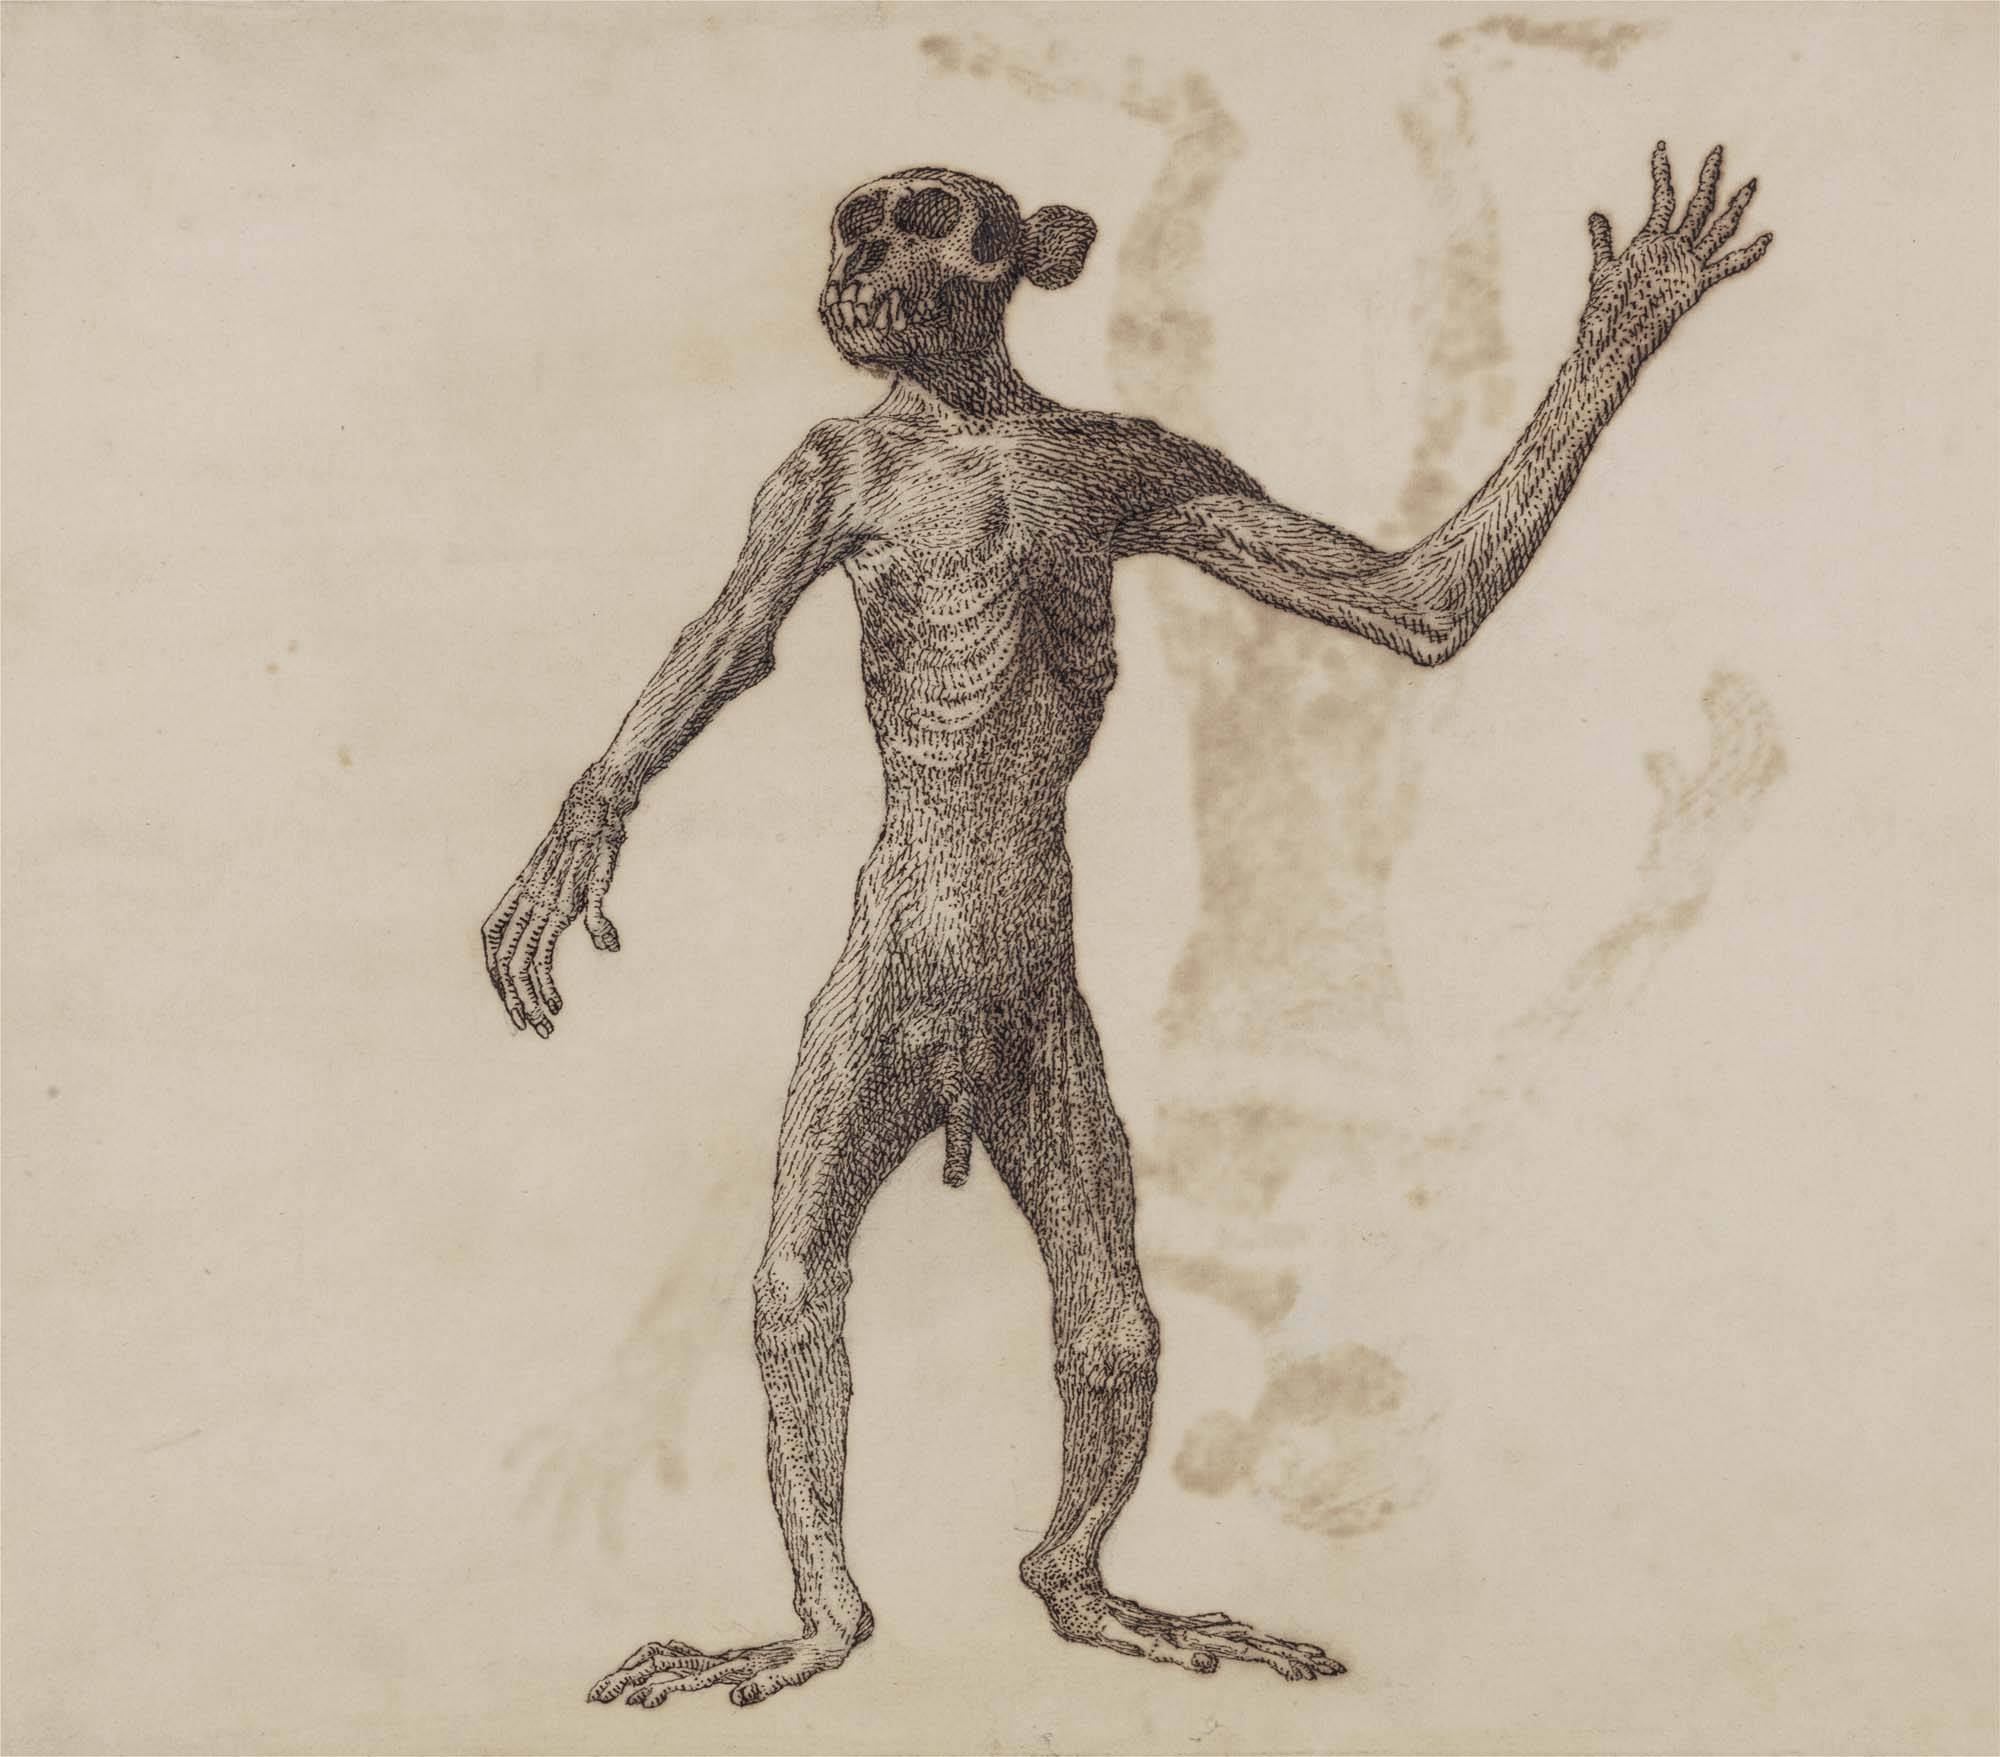 a drawing of a monkey standing in a semi cadaverous state